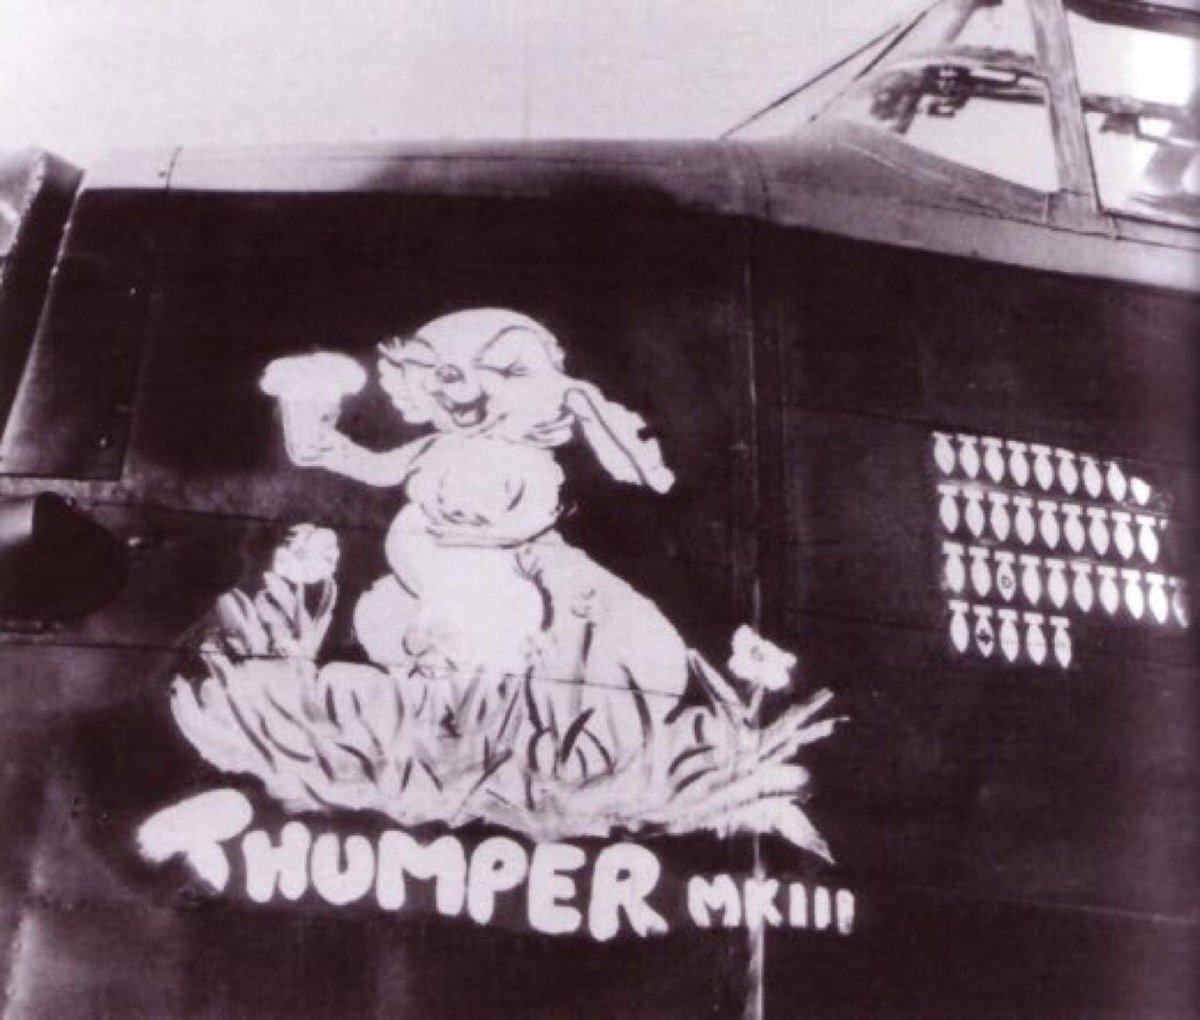 #Archive30 Day 18 #Love  Here&#39;s one of our previous posts for #ValentinesDay...  &#39;#Thumper Love&#39;  #HappyValentinesDay from #RAF #Metheringham #Aviation #Heritage in #Lincolnshire<br>http://pic.twitter.com/VzjUil1sy0